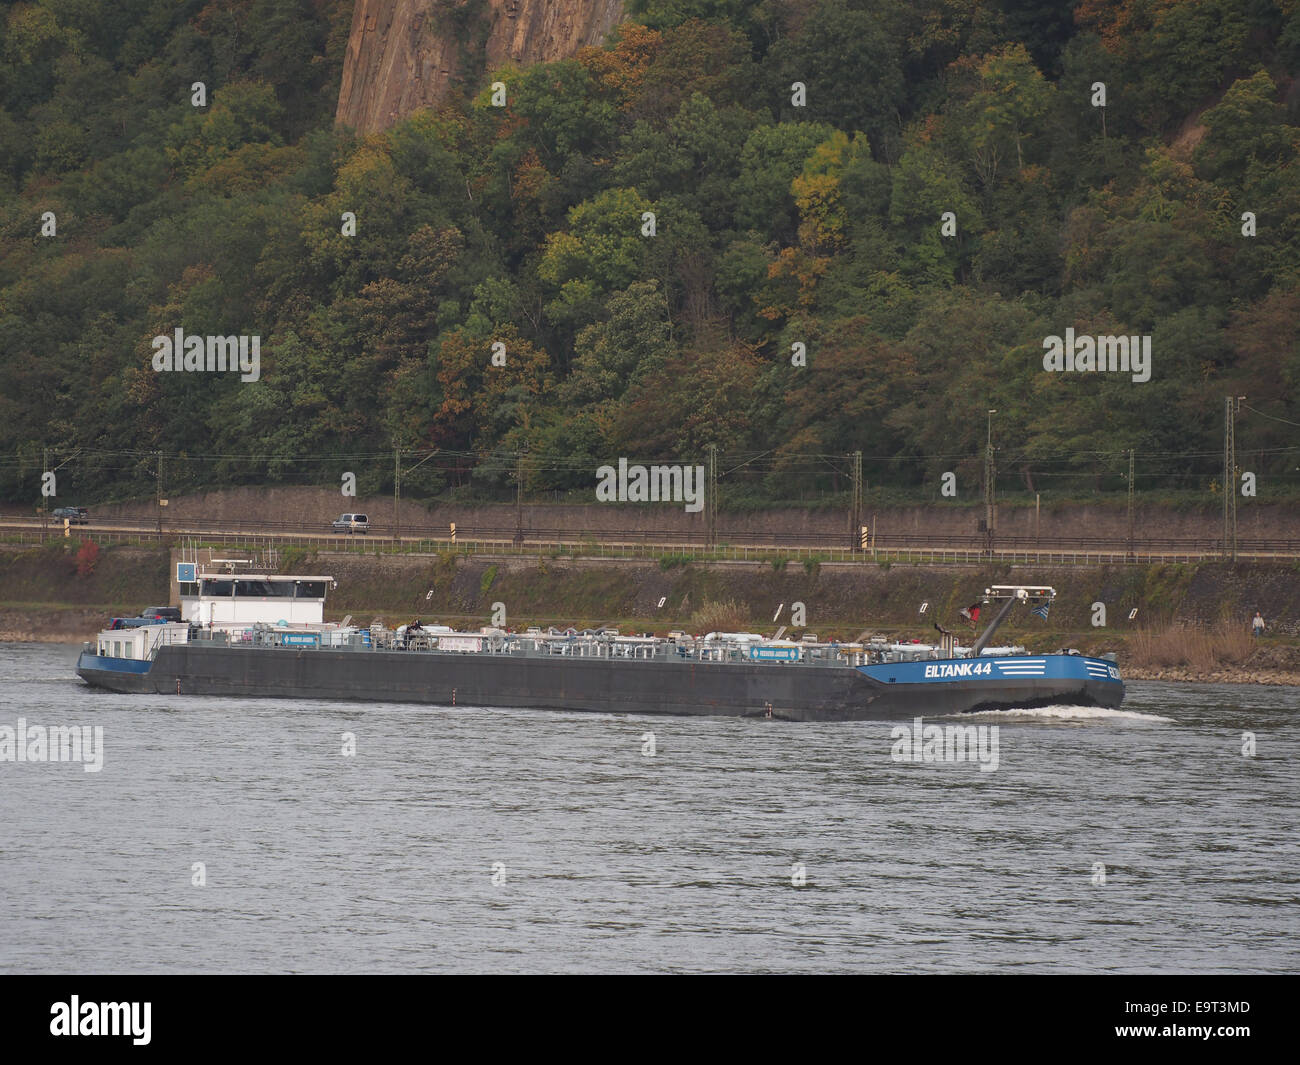 Eiltank 44, ENI 04804180 on the Rhine river at Koblenz, pic1 - Stock Image